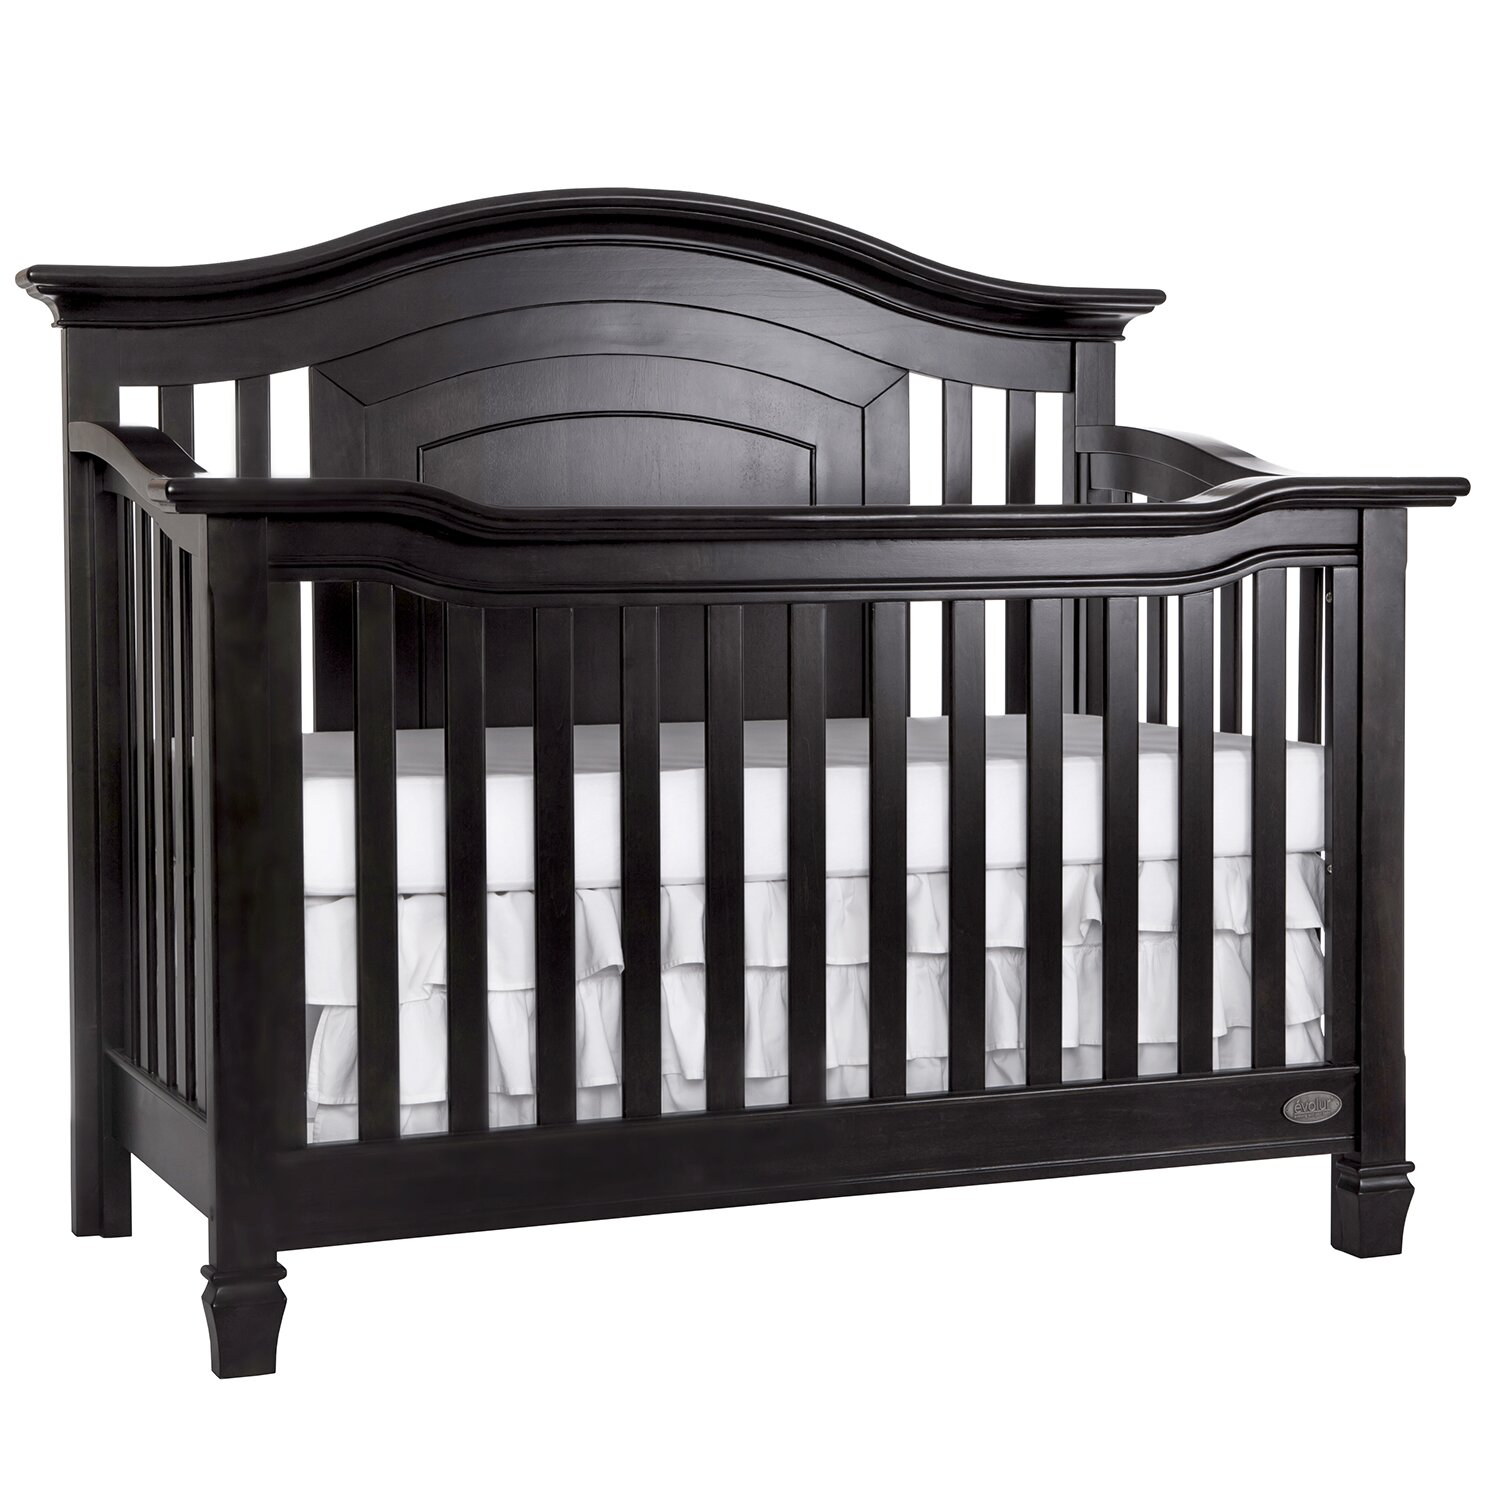 Evolur fairbanks 5 in 1 crib wayfair for Furniture fairbanks